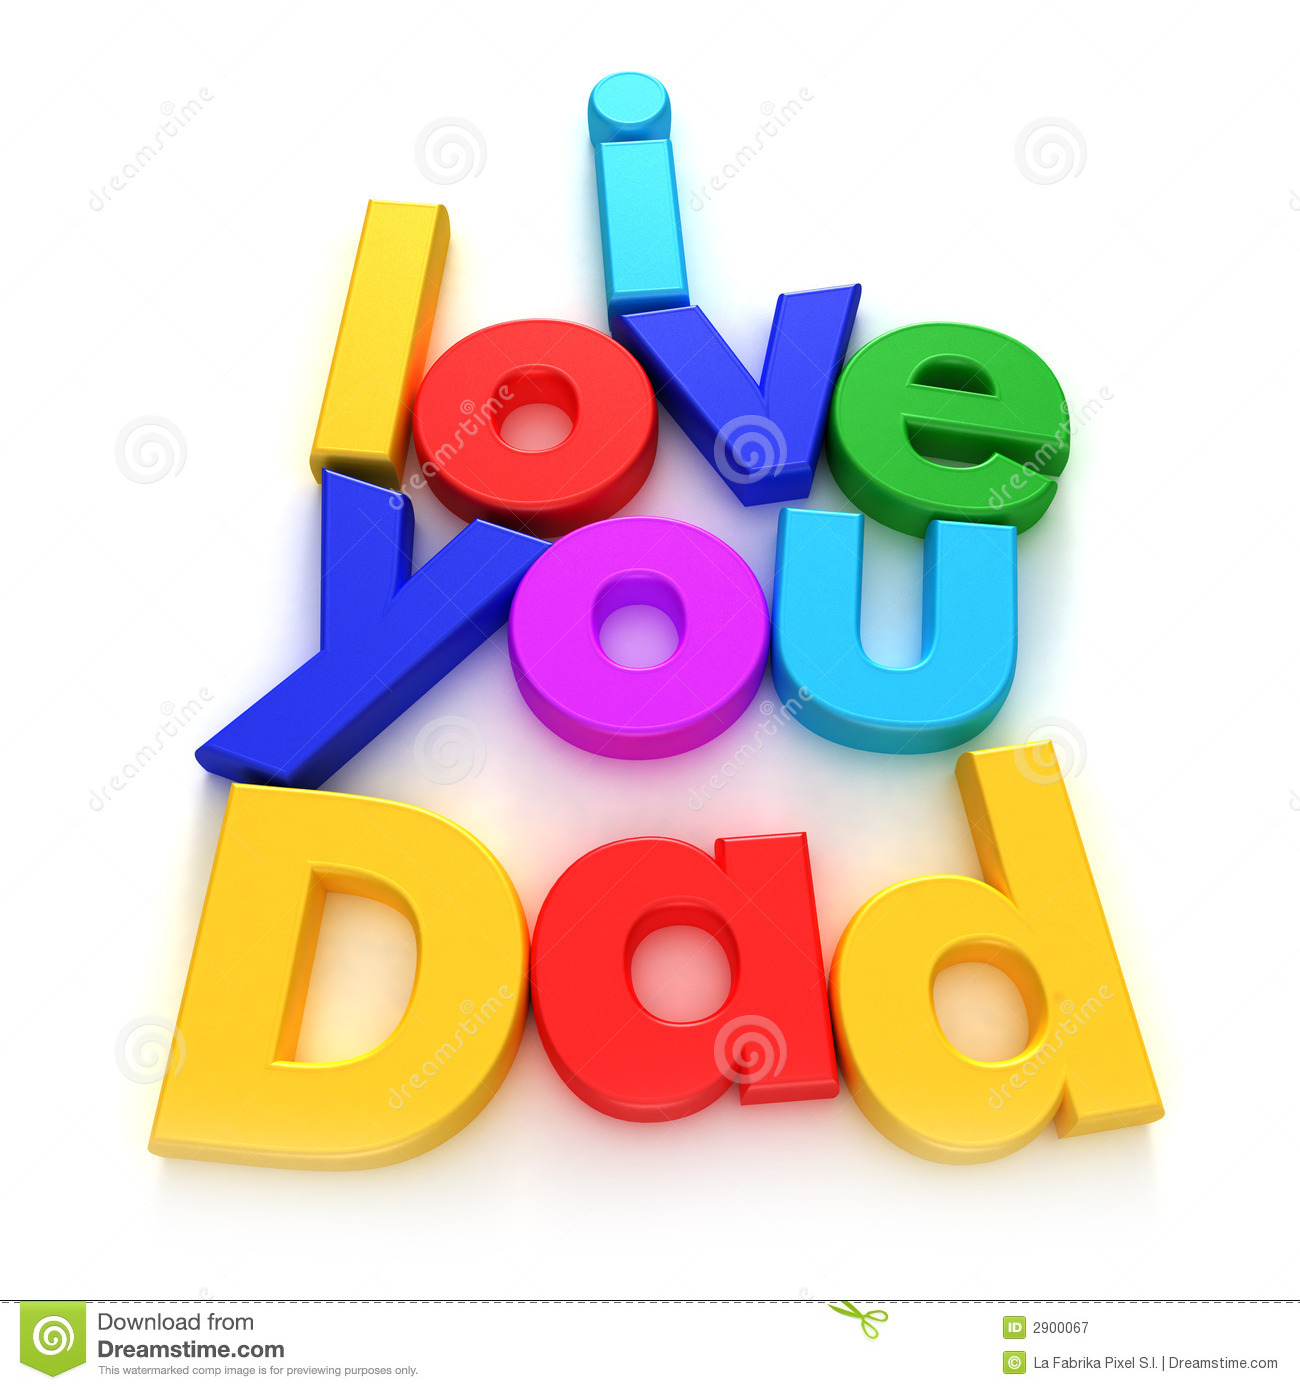 Italian handwritten postcard letter stock photo image 39254147 - You Dad Written With Colourful Letter Magnets On Neutral Background